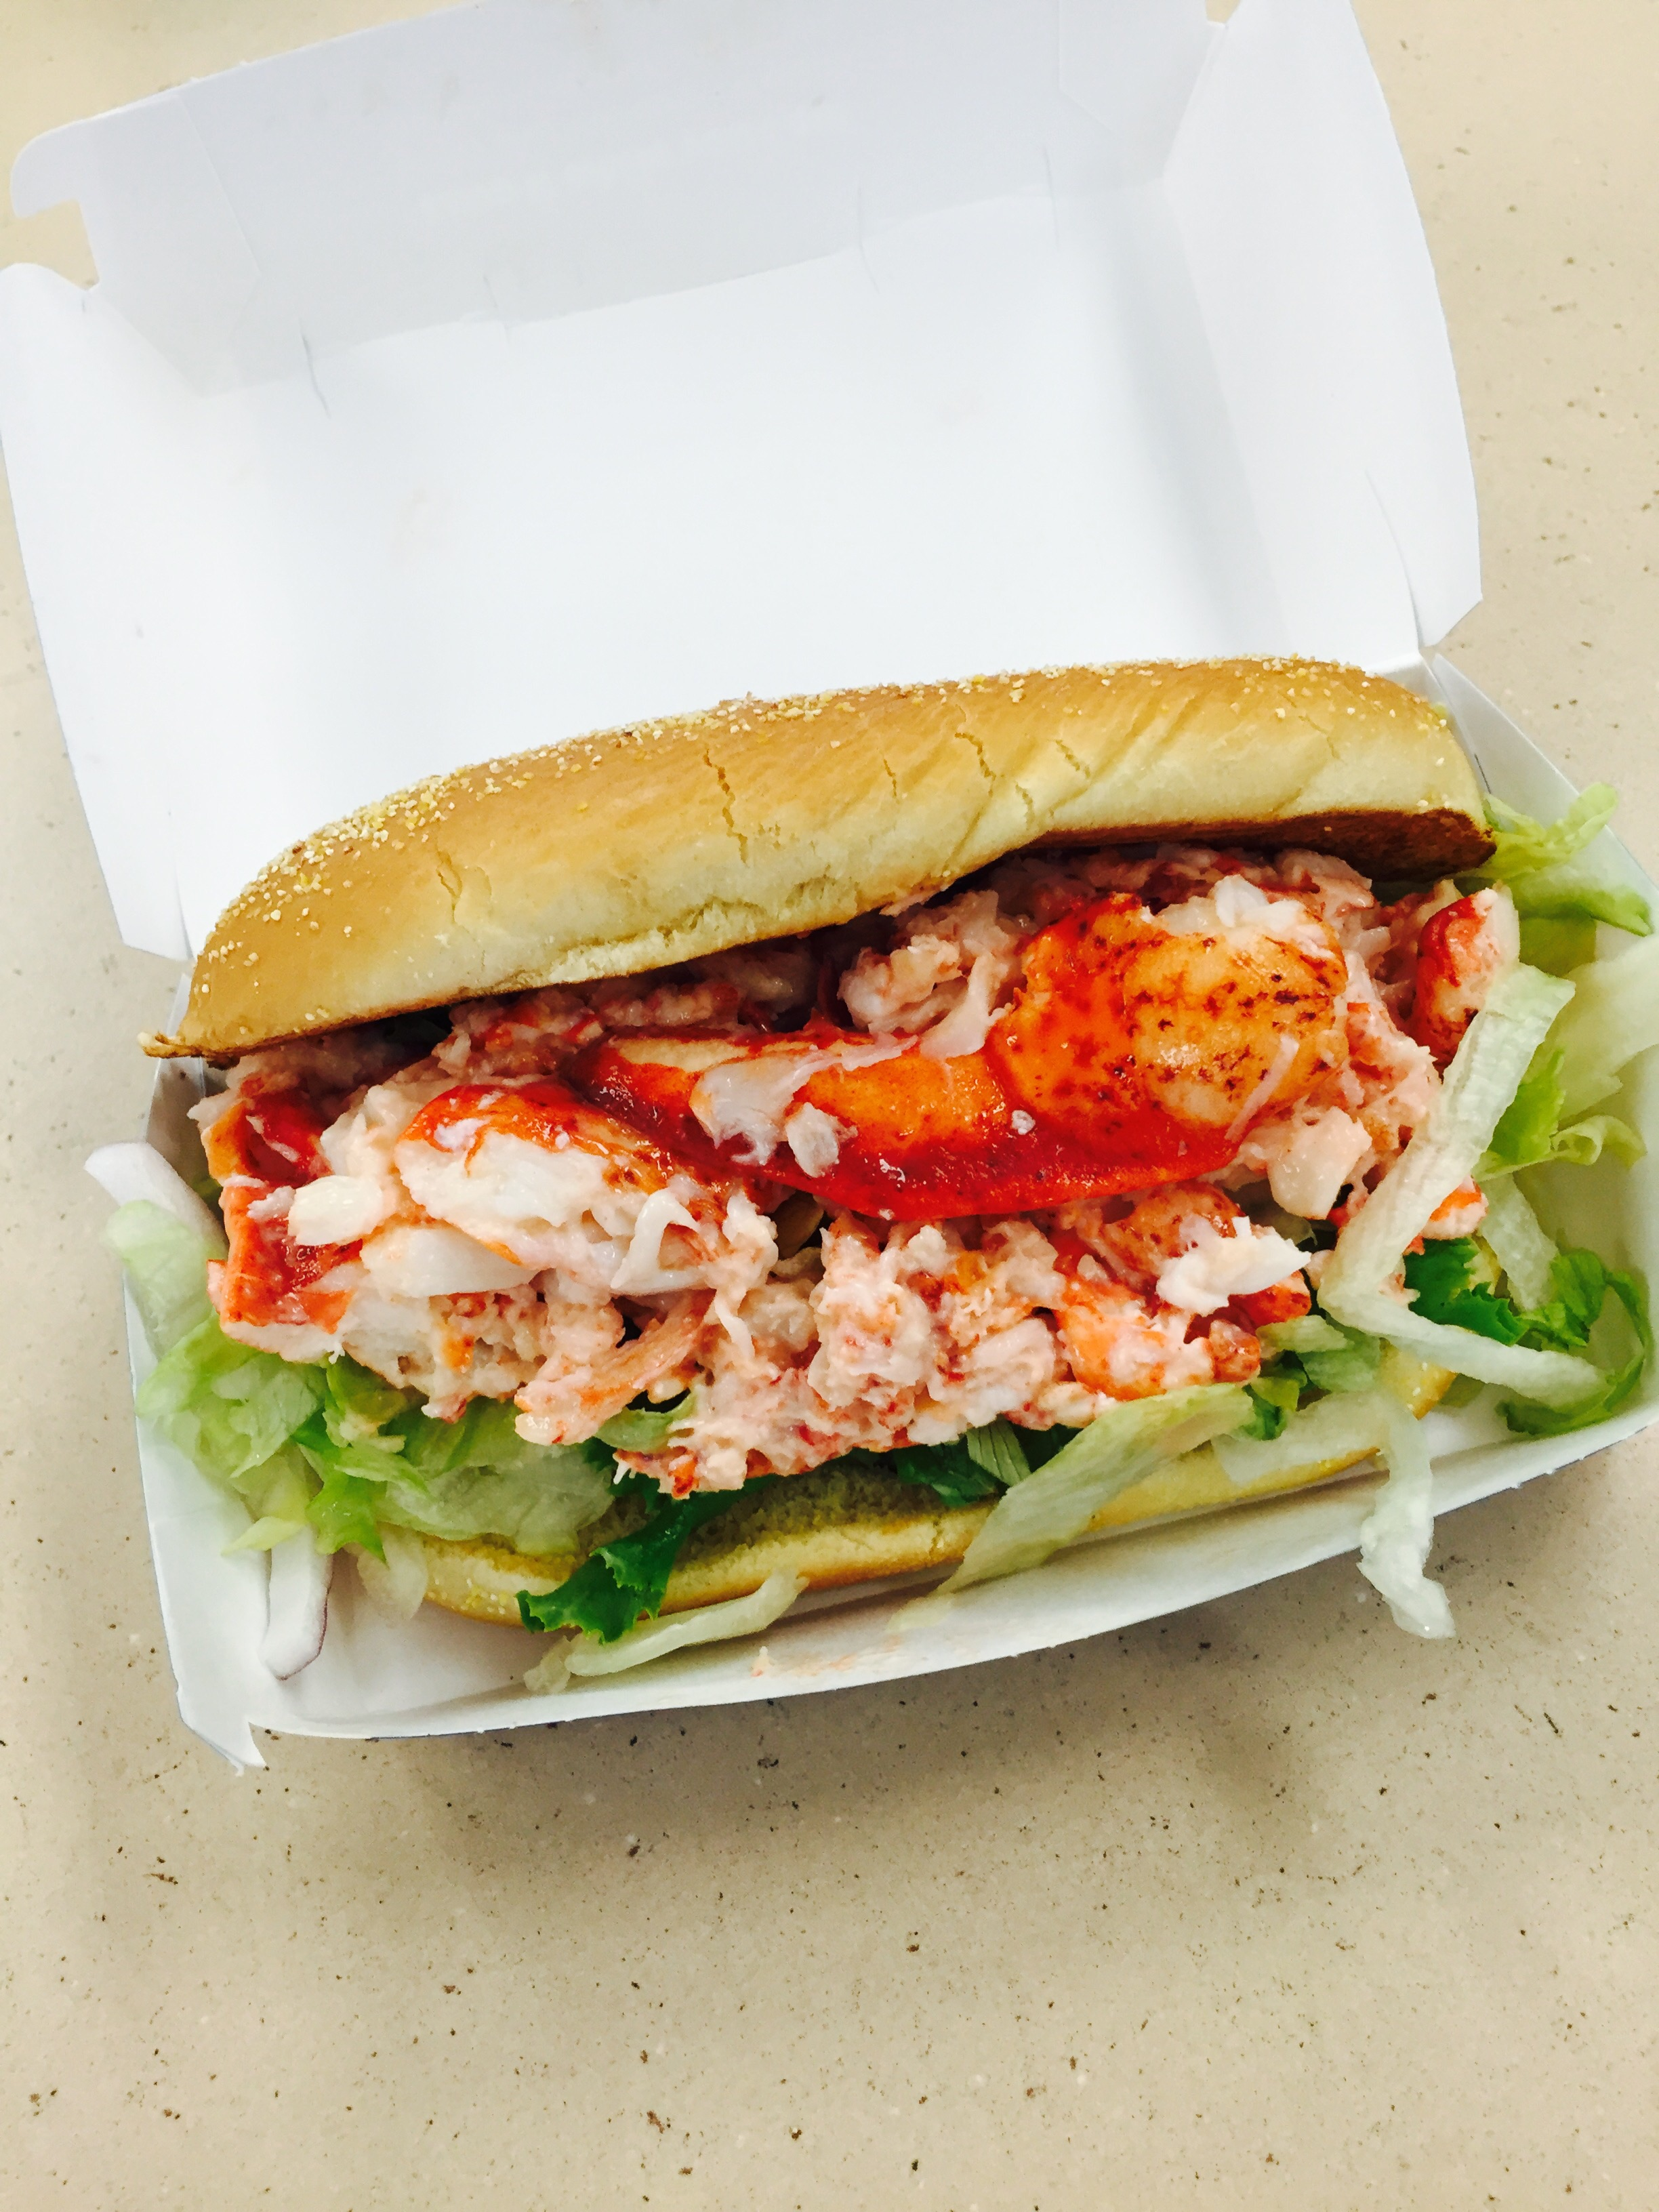 The McDonald's Lobster Roll. Image property Jessica Gordon Ryan. Taken with an iPhone 6.